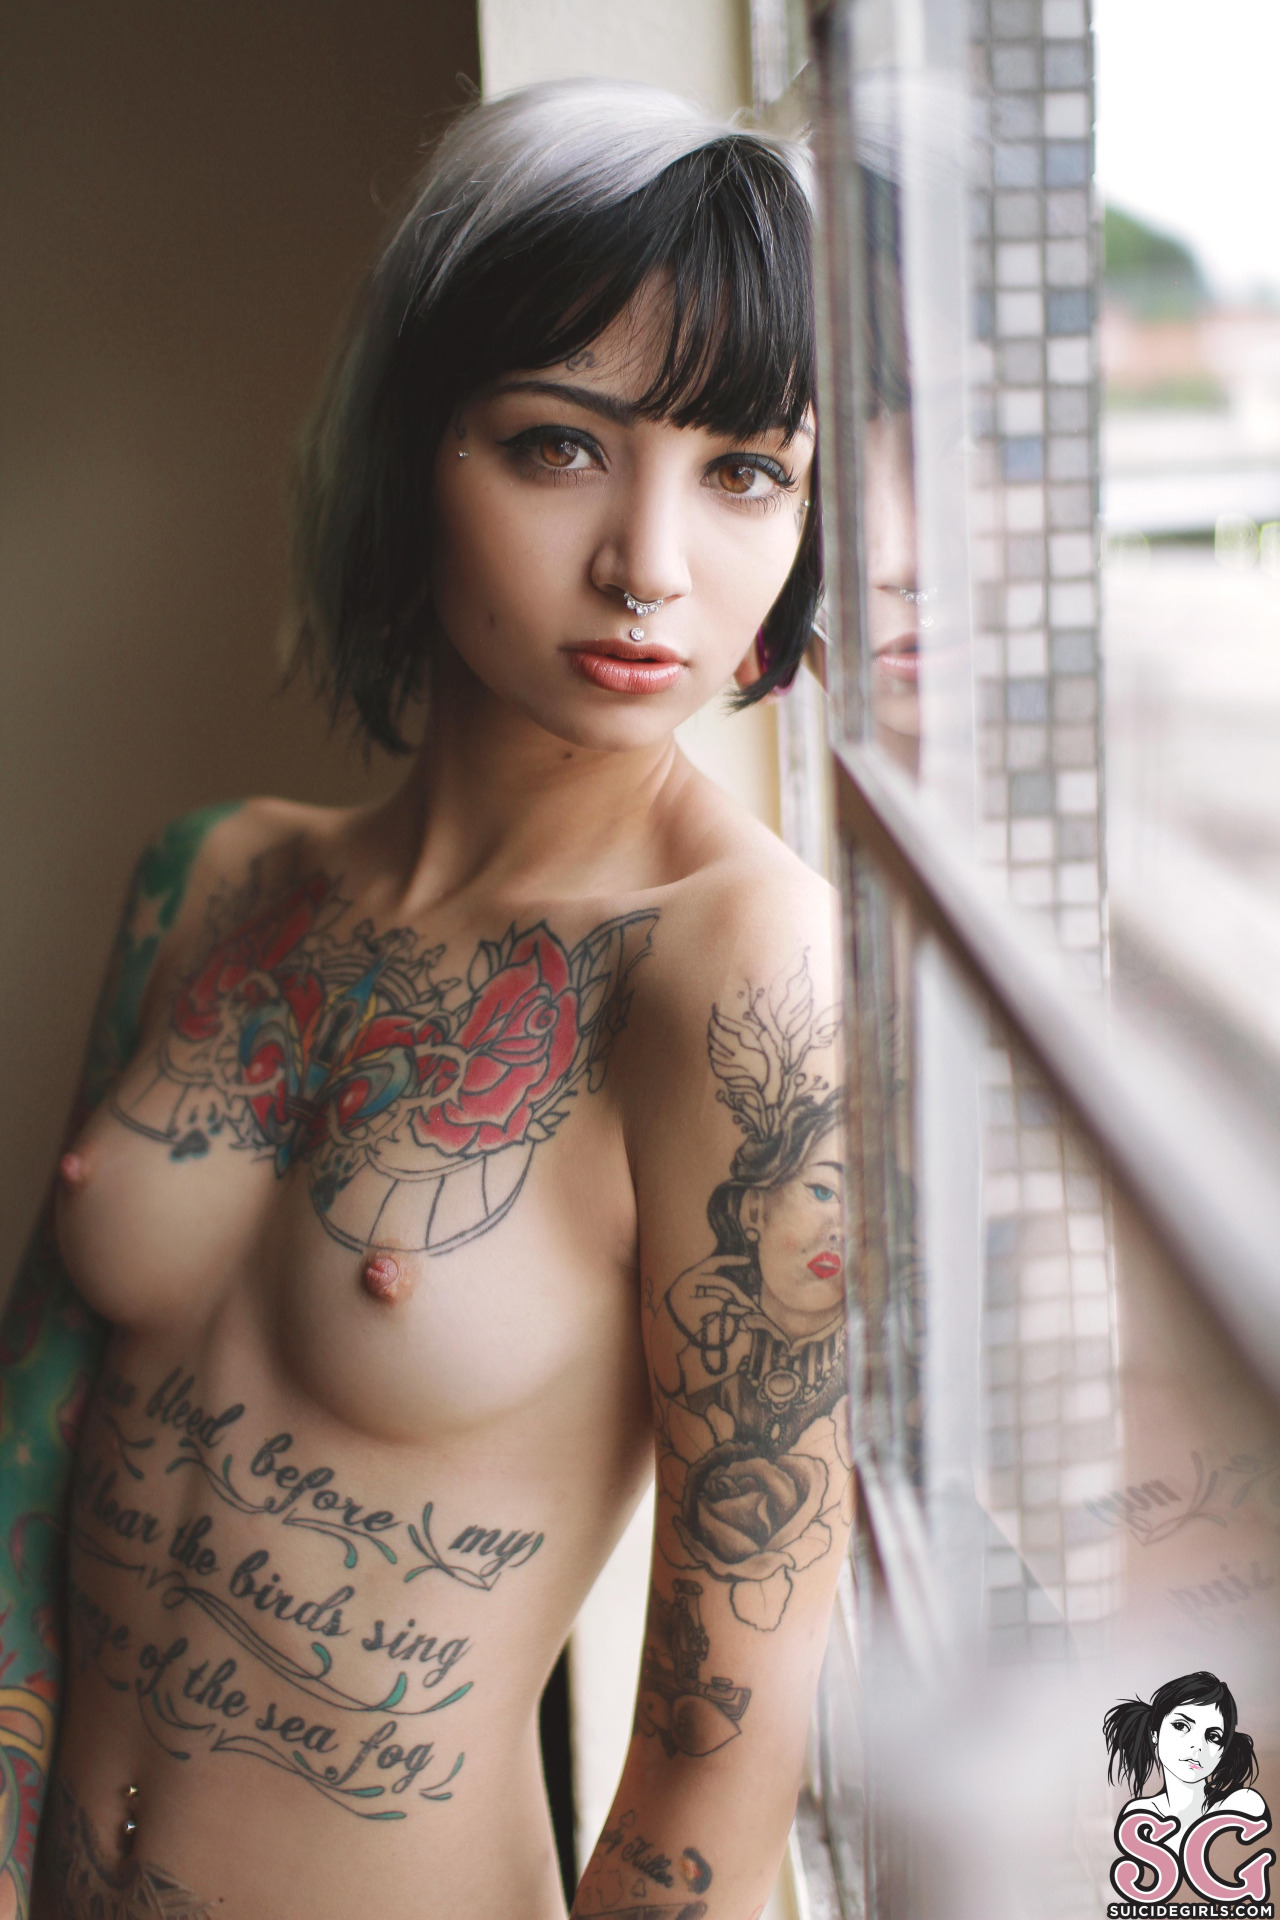 Jenna suicide girl nude really